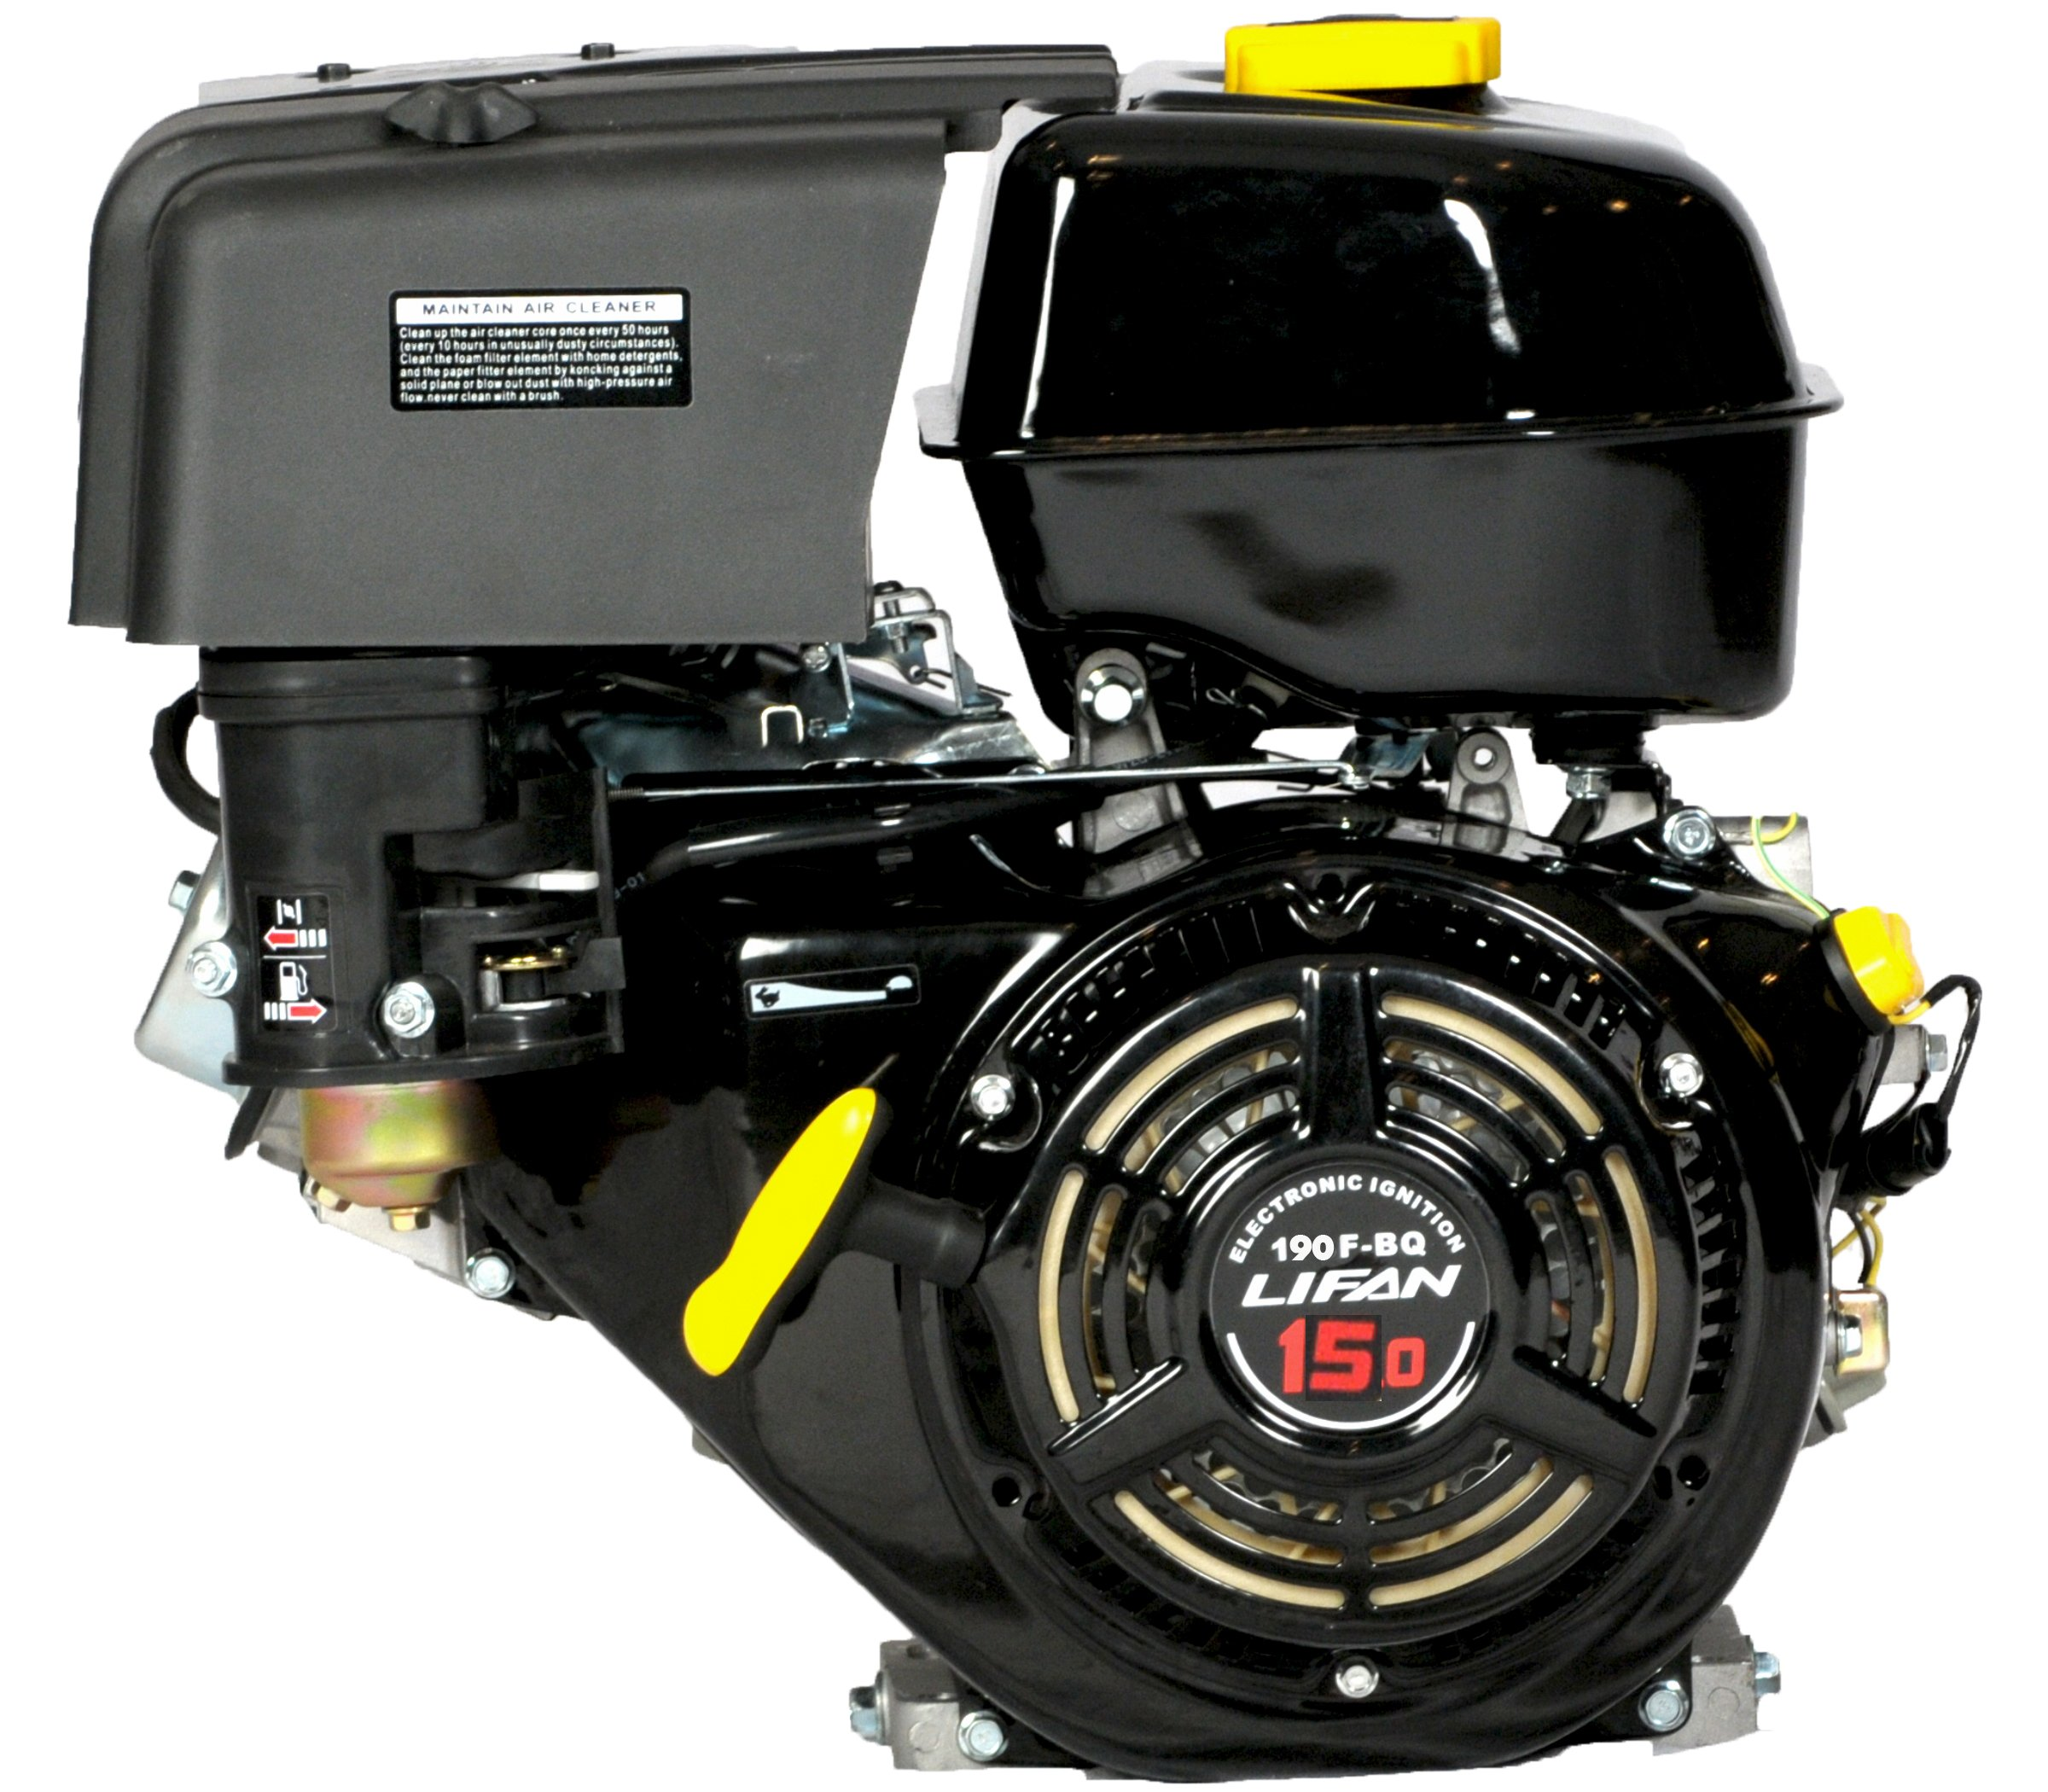 Lifan LF190F-BQ 15 HP 420cc 4-Stroke OHV Industrial Grade Gas Engine with Recoil Start and Universal Mounting Pattern by Lifan